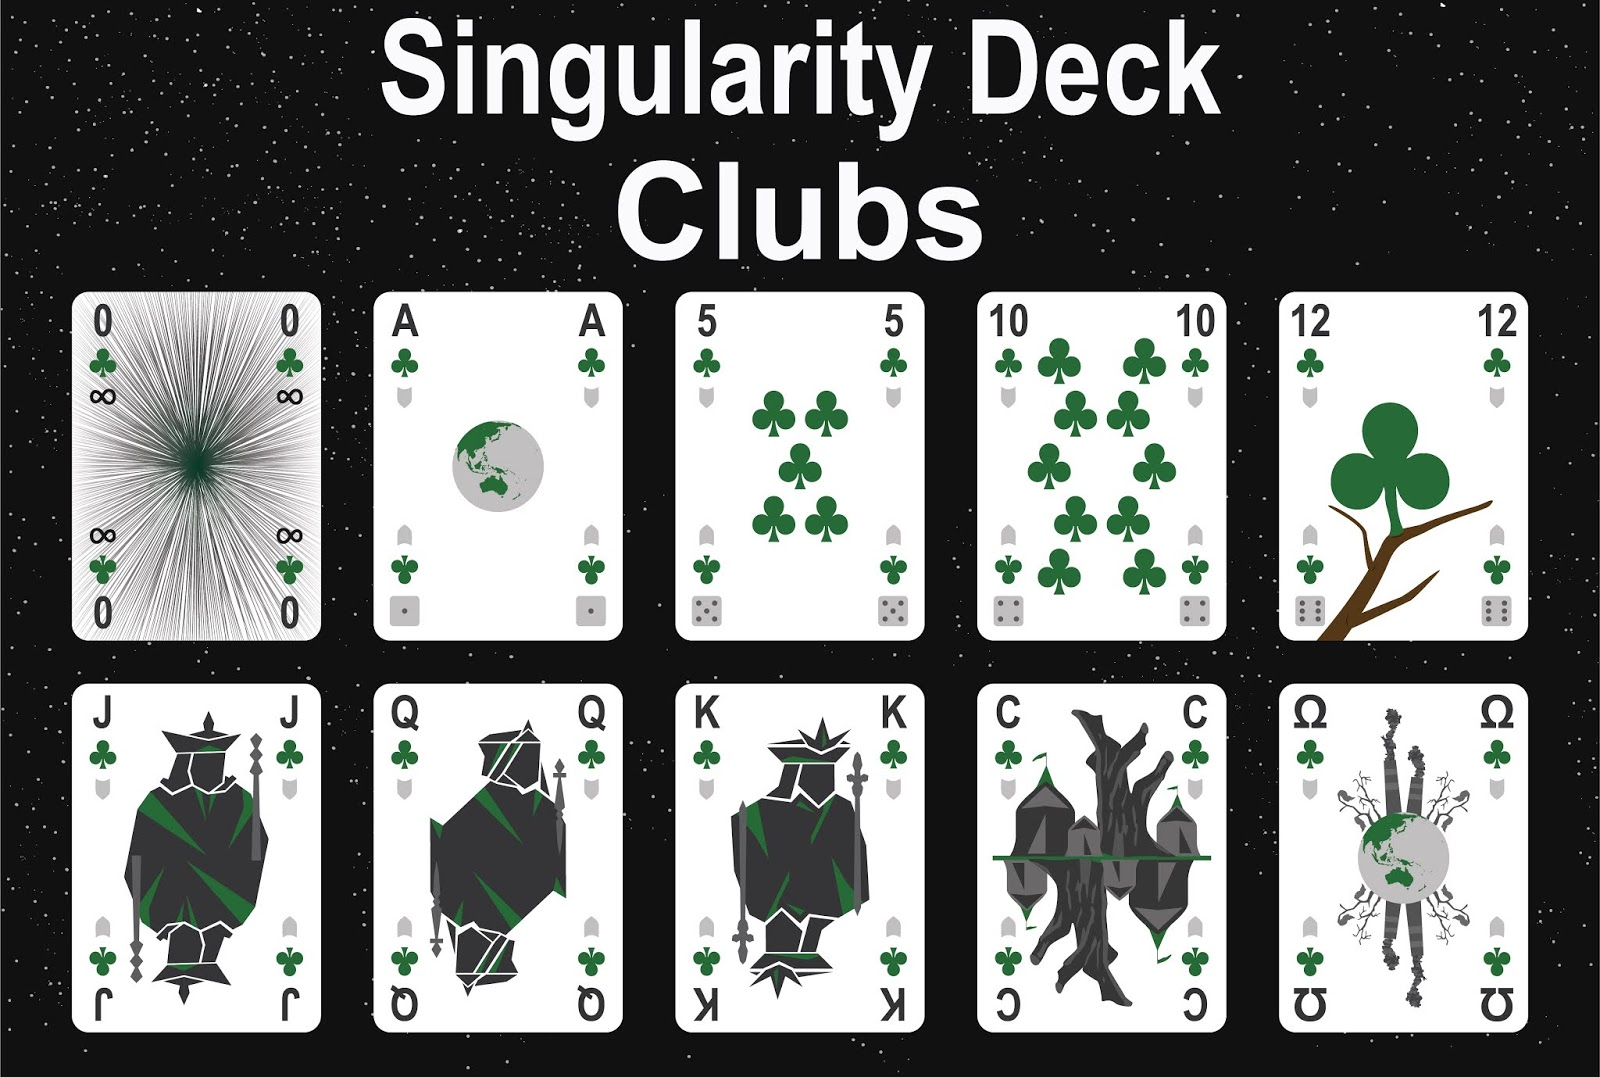 The Singularity Deck - Clubs Art